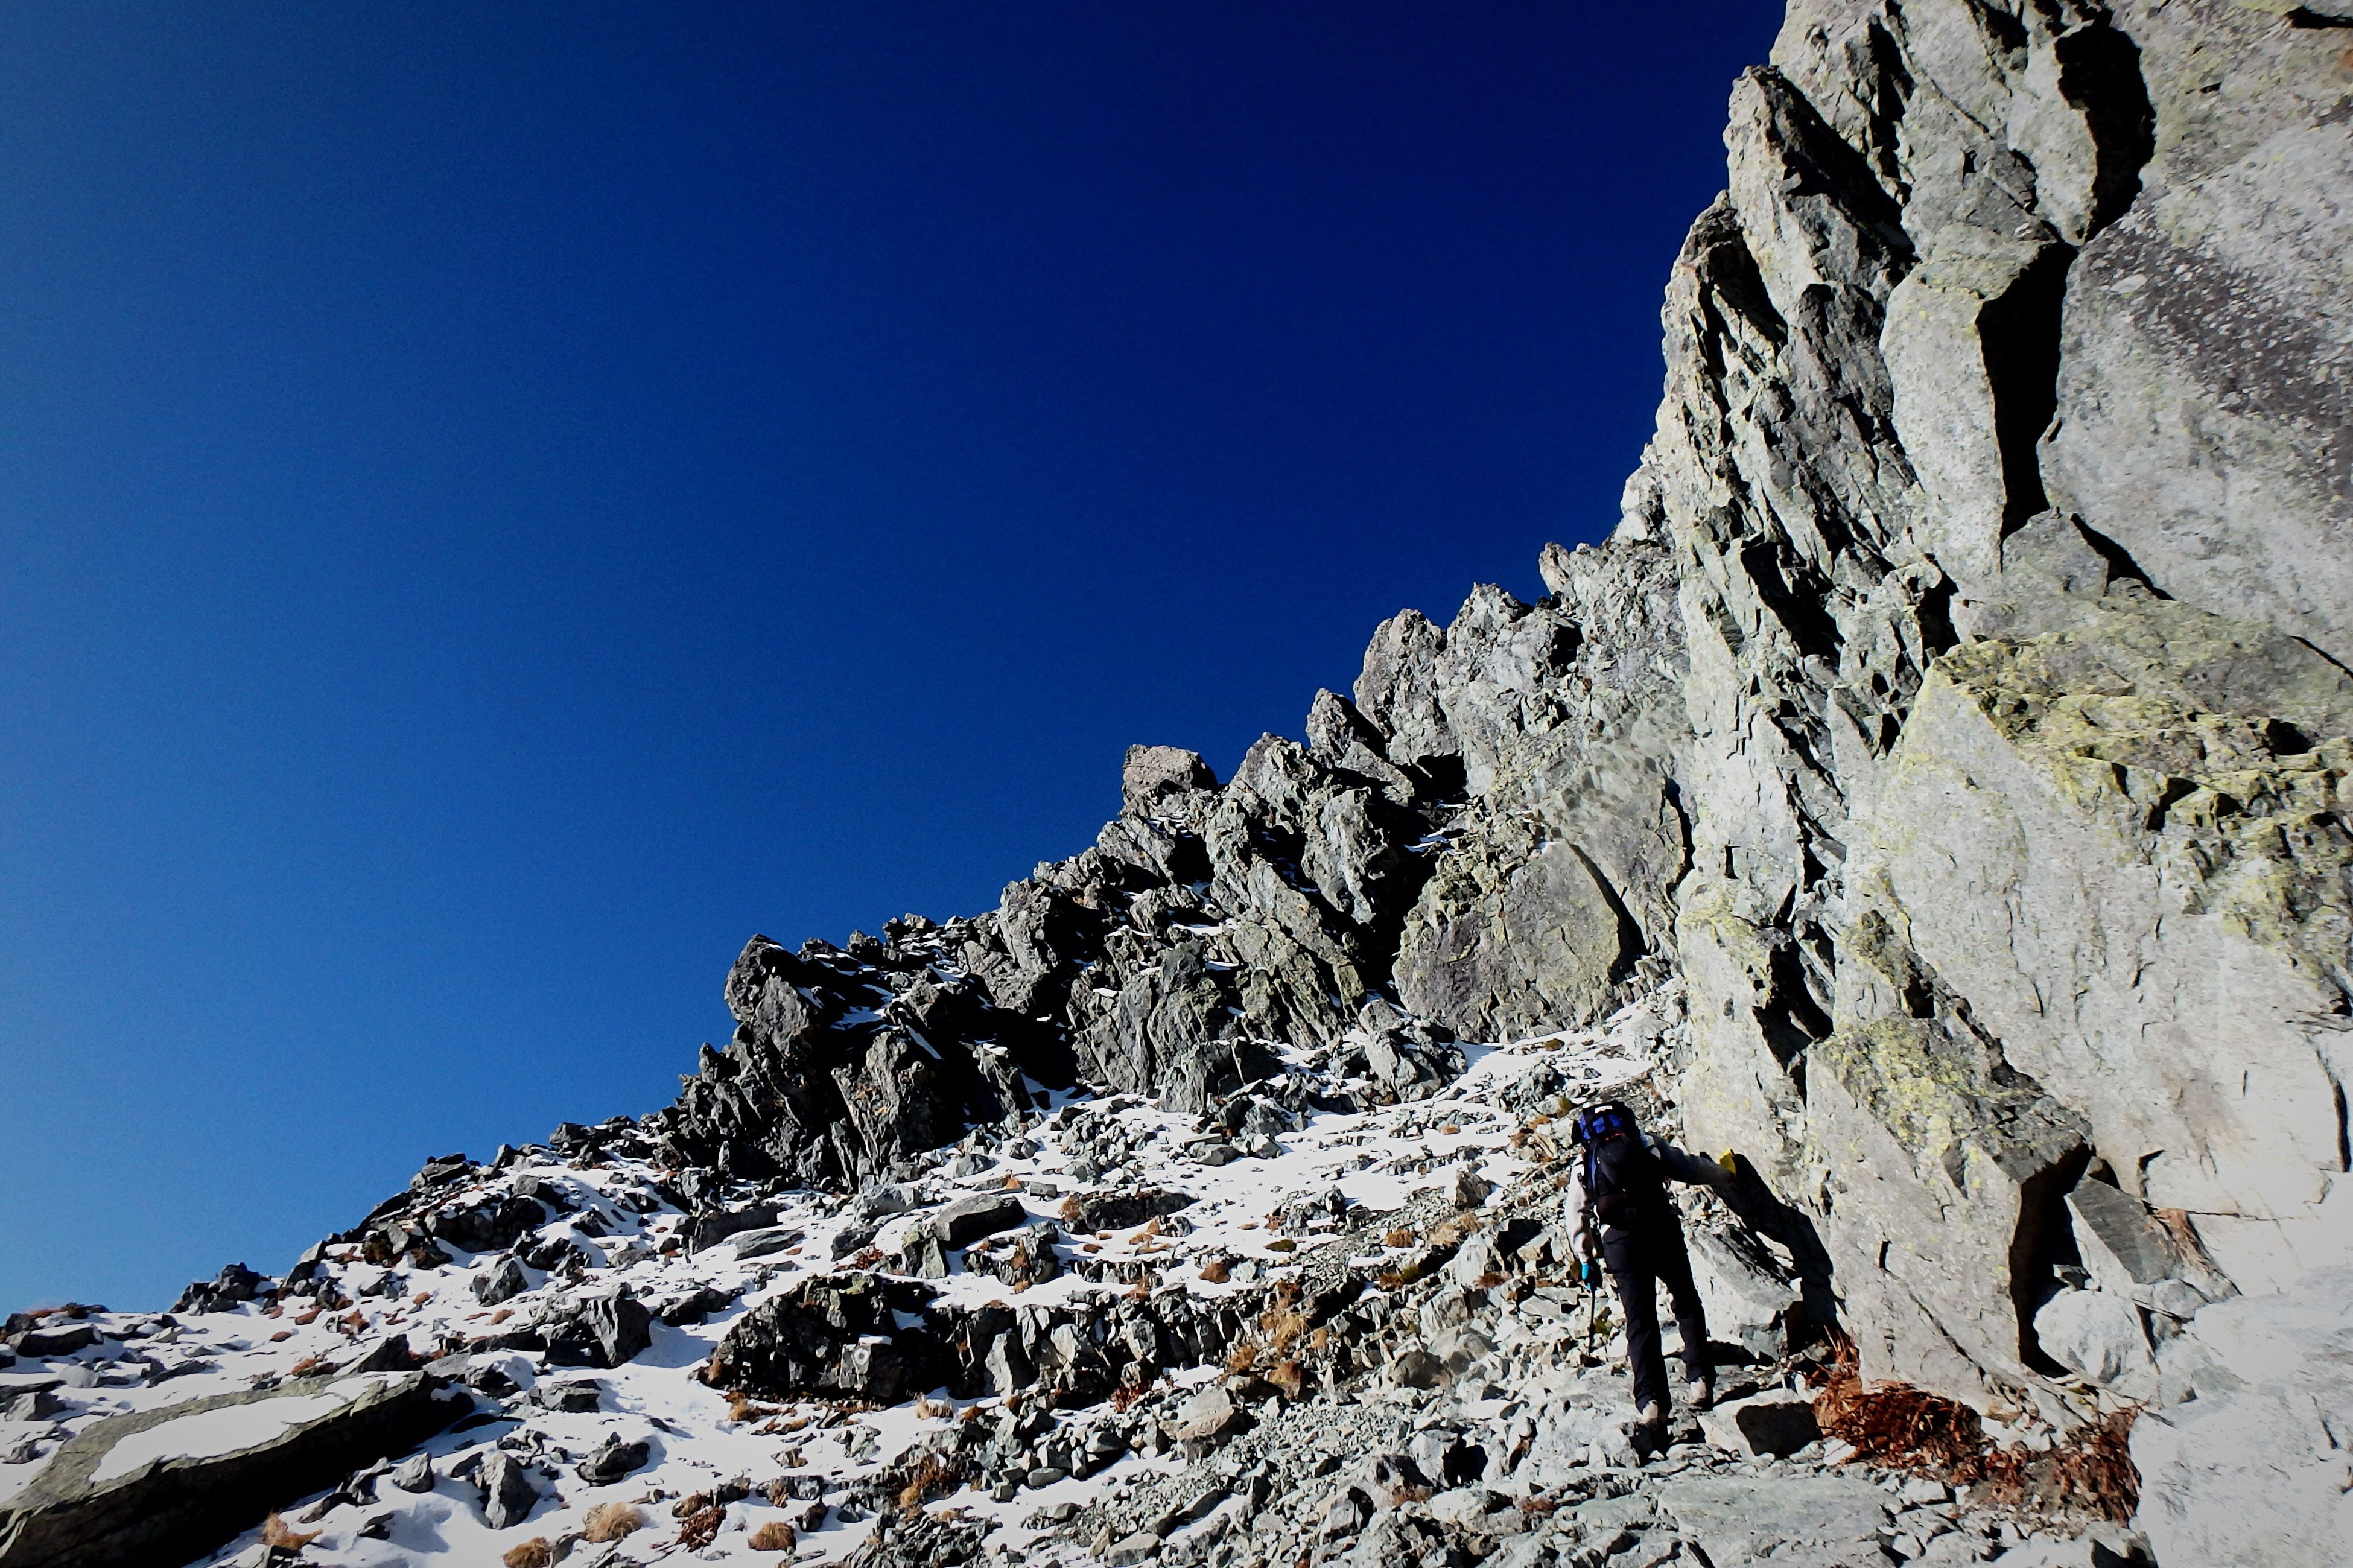 clear sky, blue, copy space, mountain, low angle view, rock formation, tranquility, rock - object, tranquil scene, beauty in nature, scenics, nature, sunlight, rocky mountains, landscape, day, physical geography, non-urban scene, snow, cliff